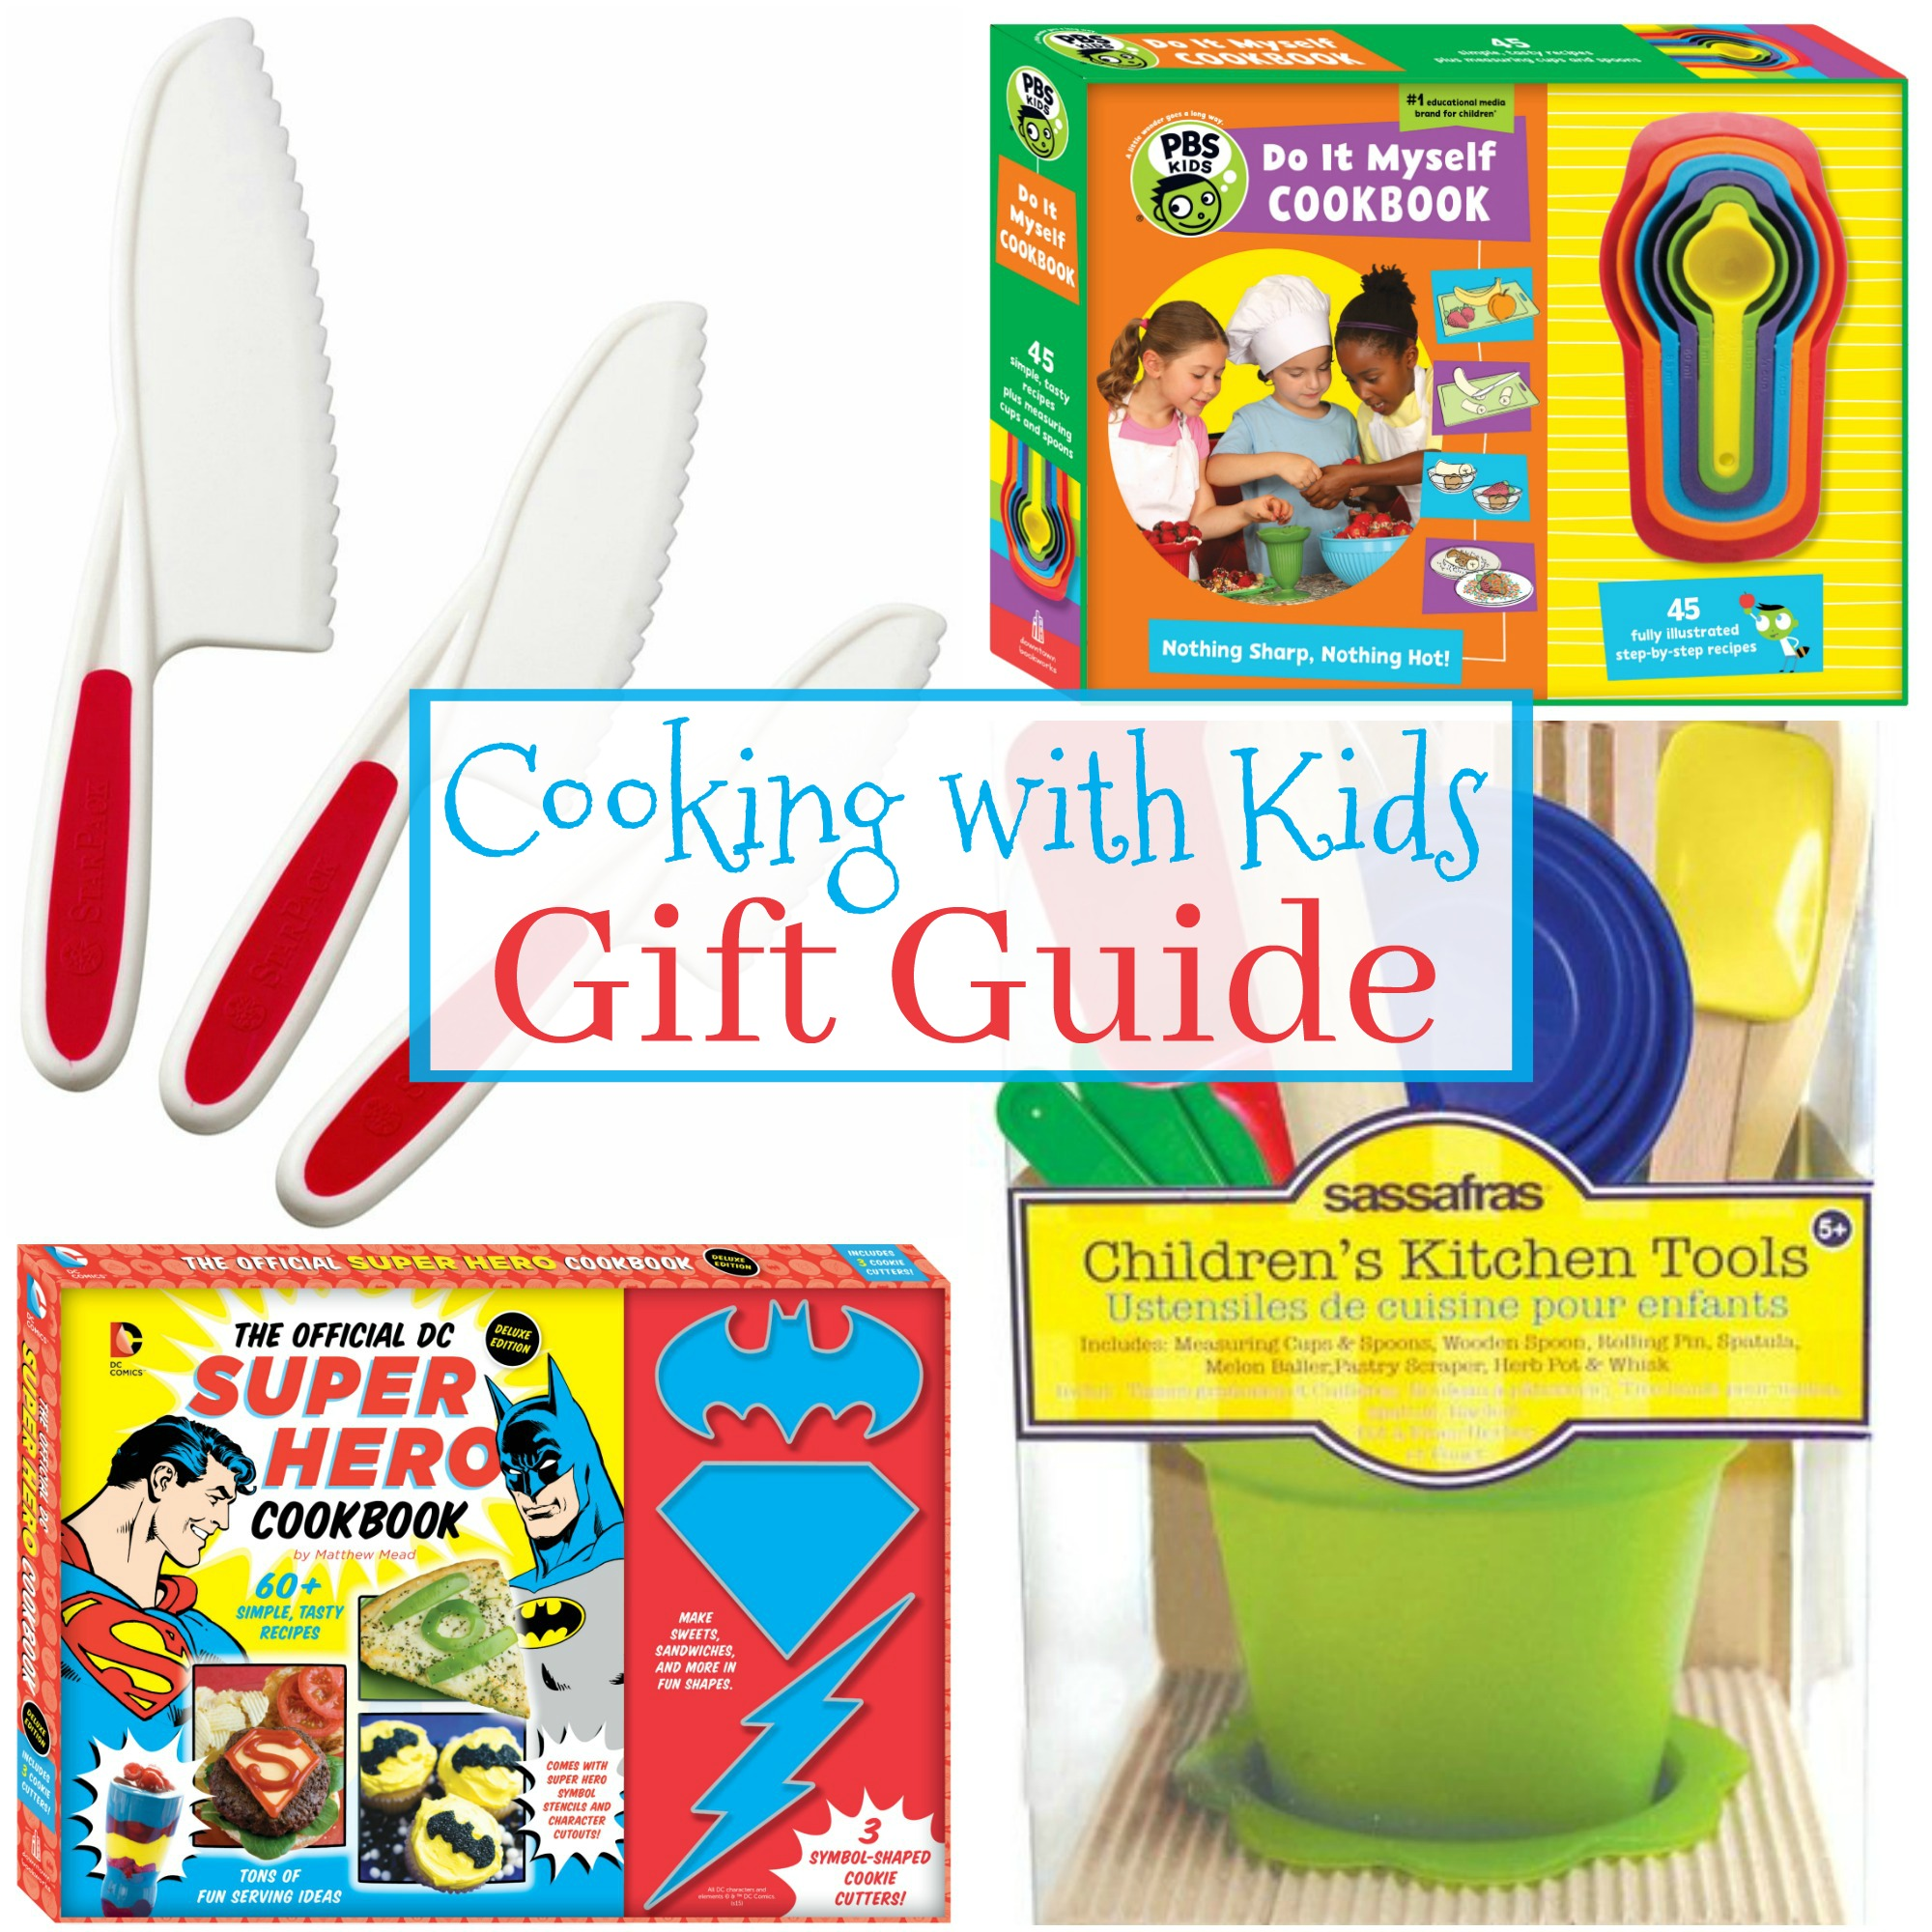 Cooking with Kids Gift Guide